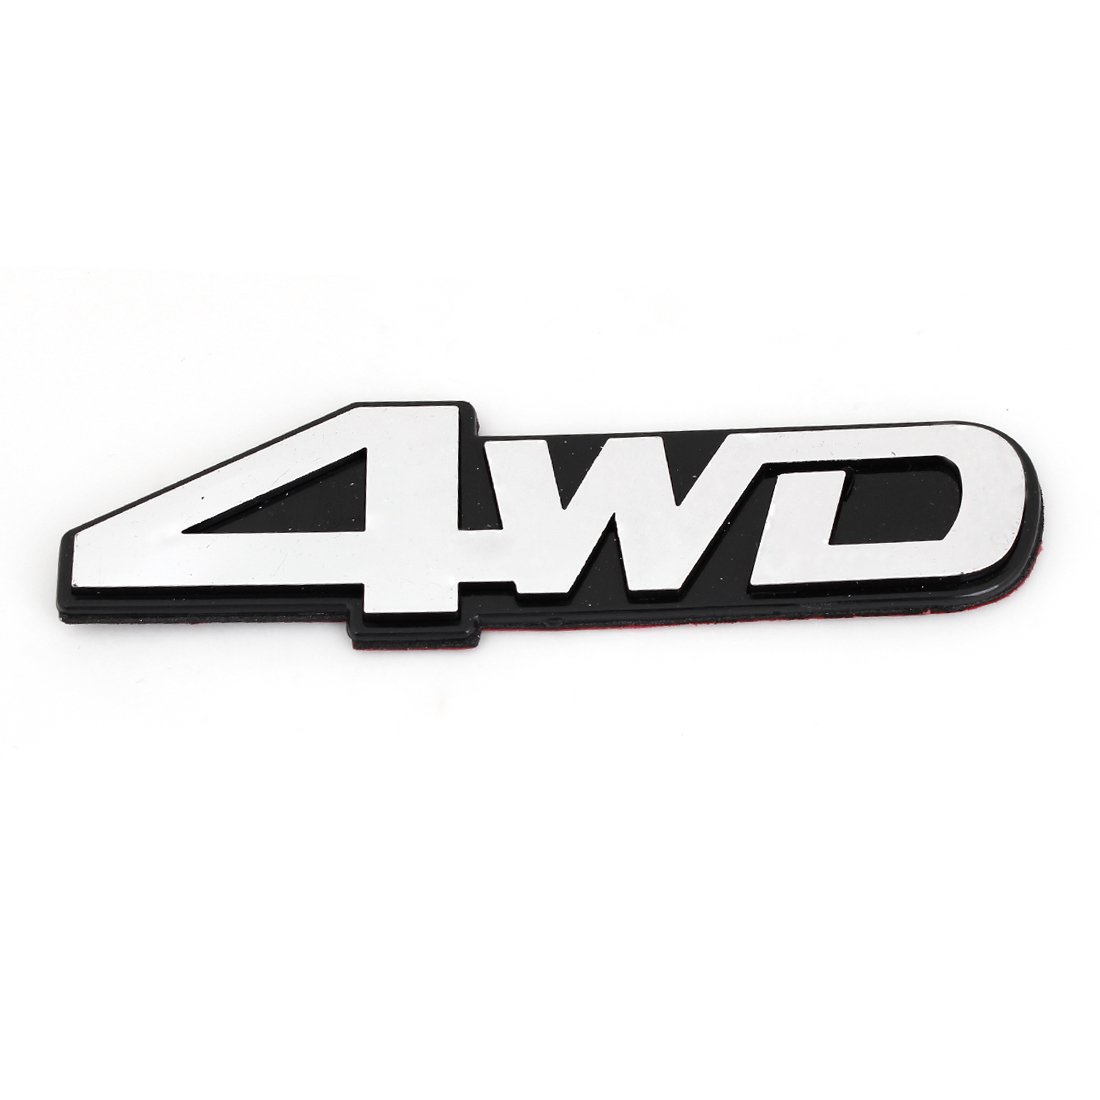 Silver Tone Plastic 4WD Shaped Adhesive Car Automobile Badge Sticker Decor